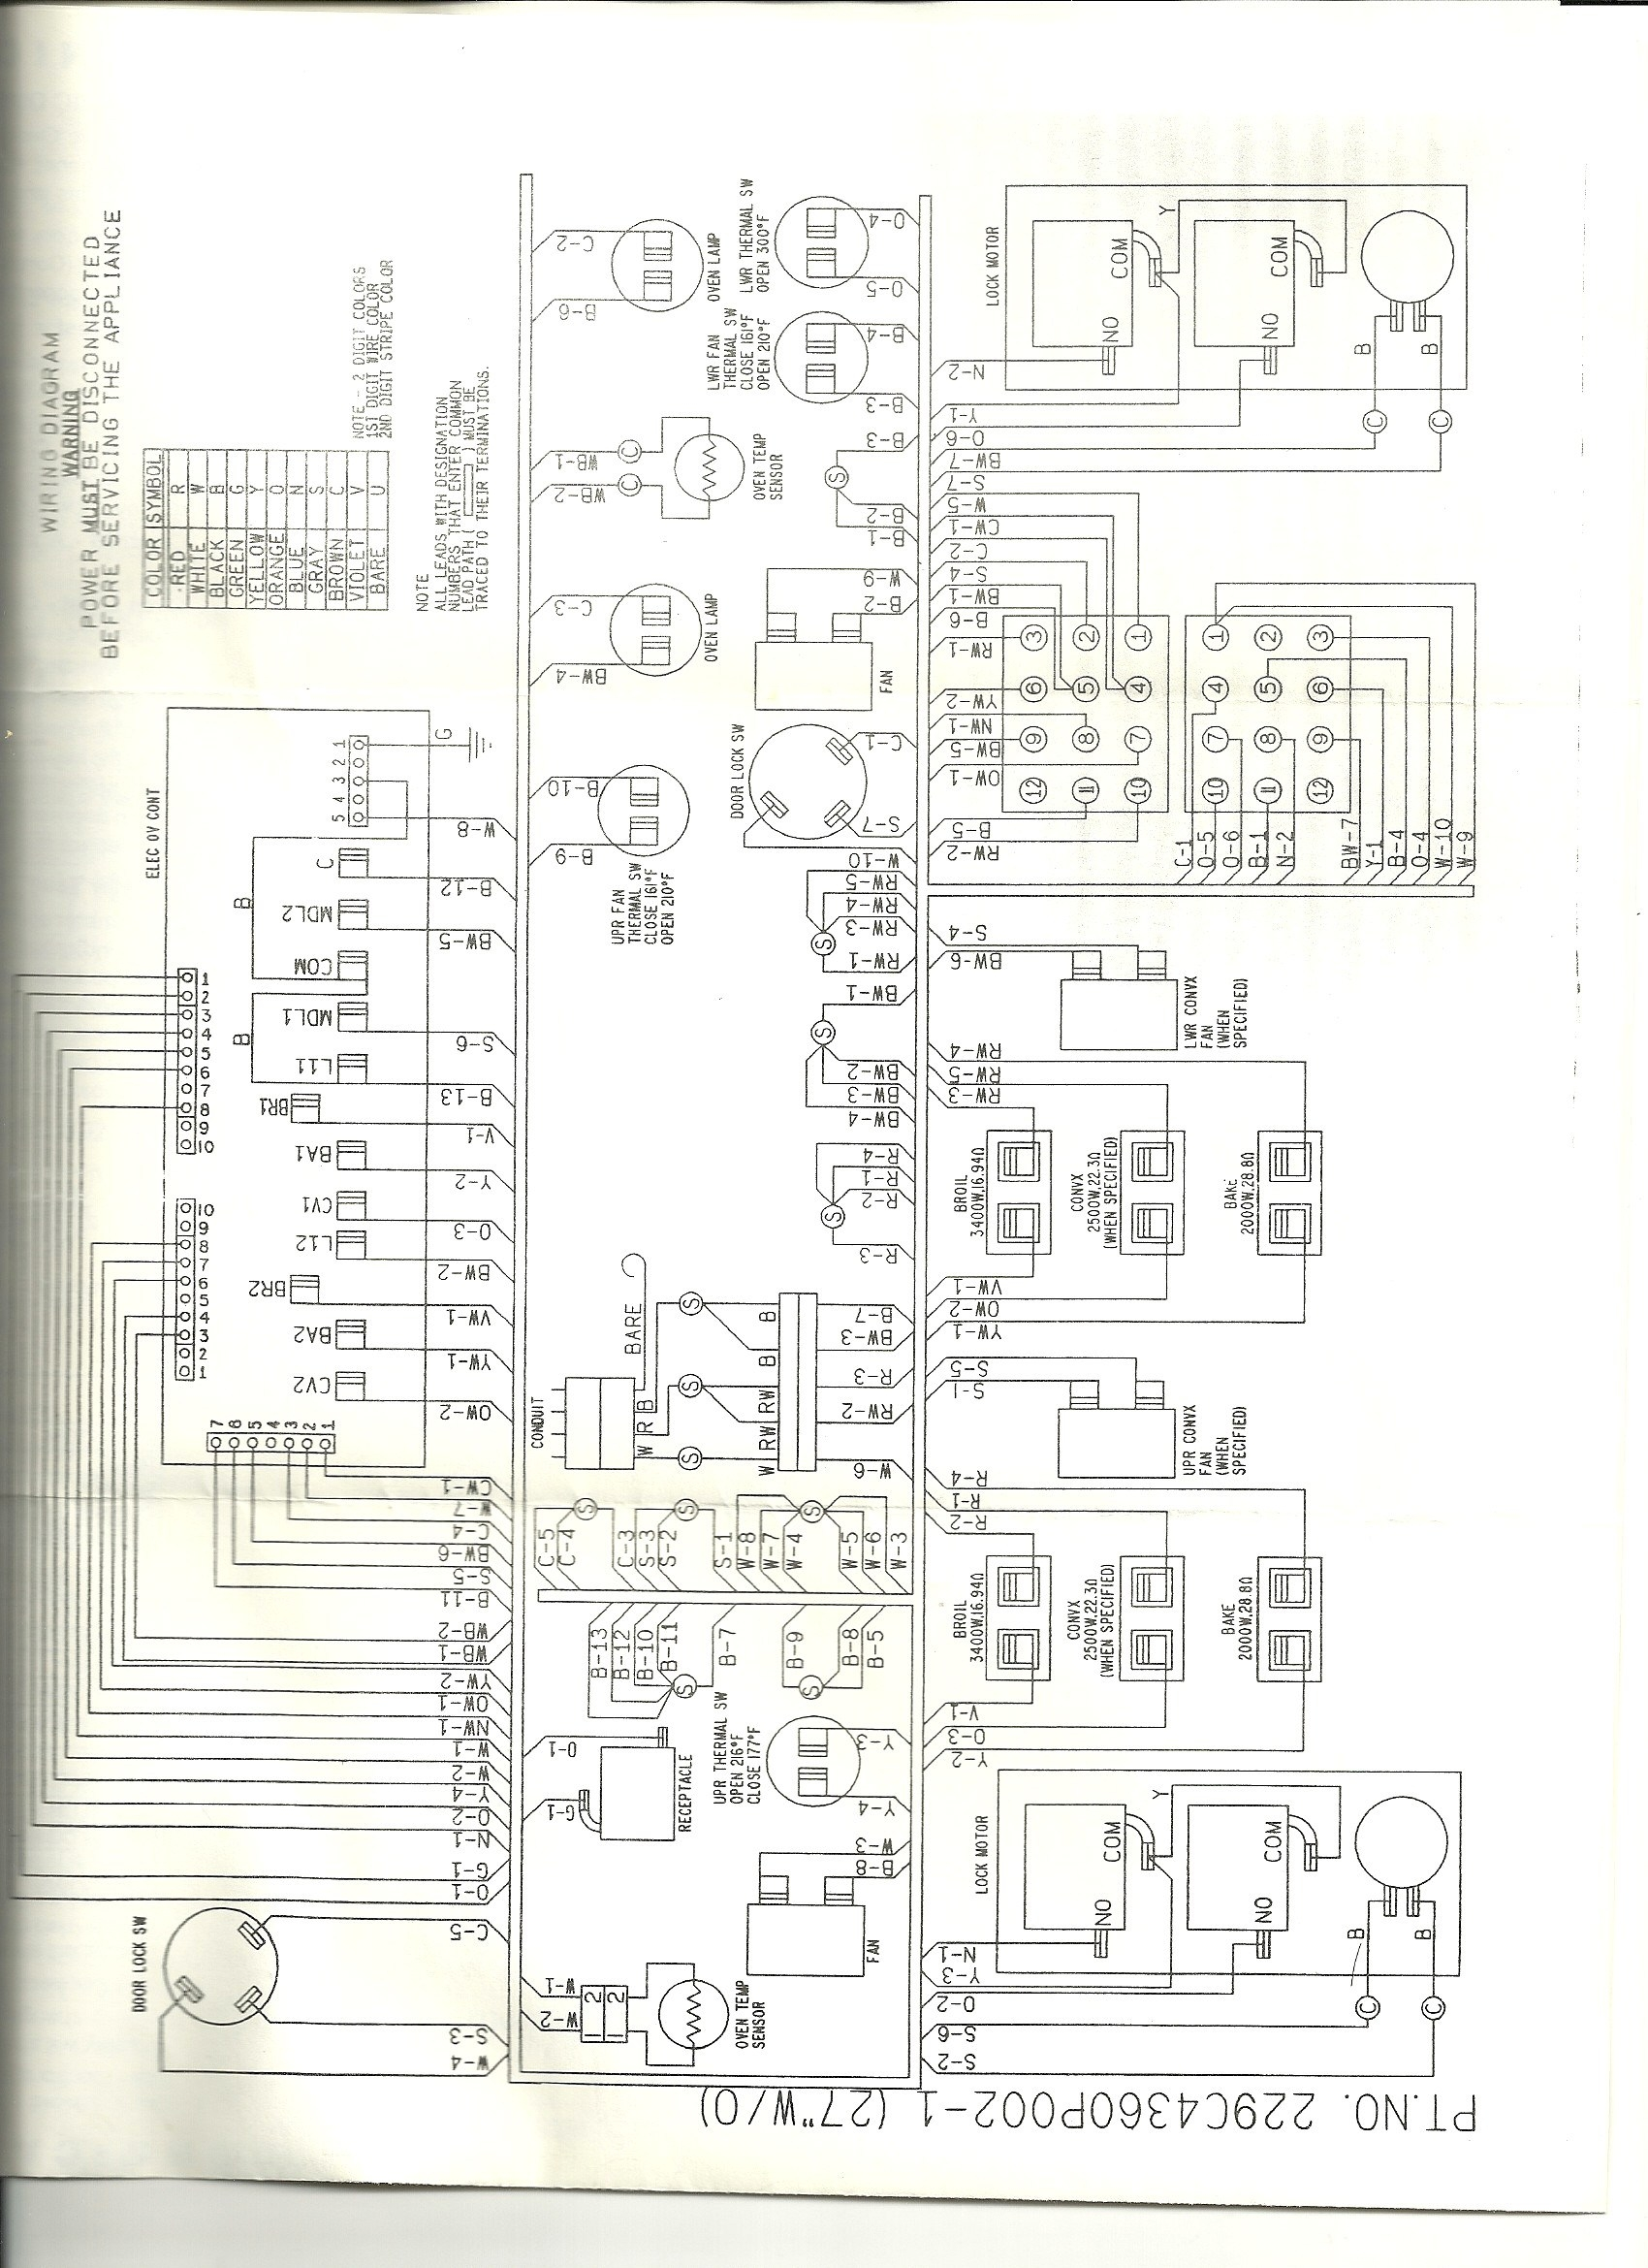 Ge Range Electrical Diagram - Wiring Diagrams Home on